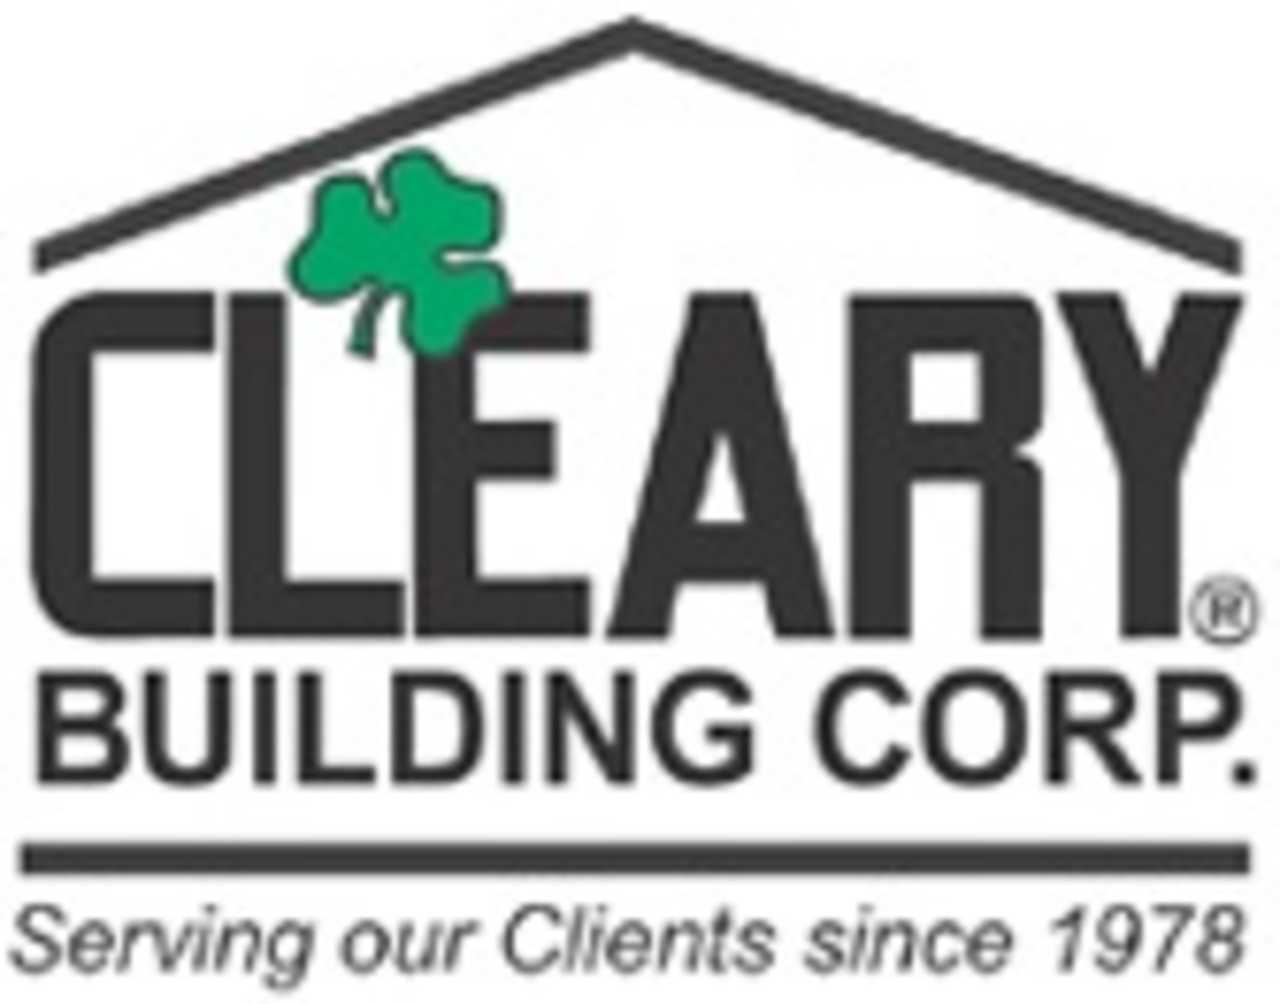 Cleary Building Corp - Construction - Commercial Construction in Galesburg IL